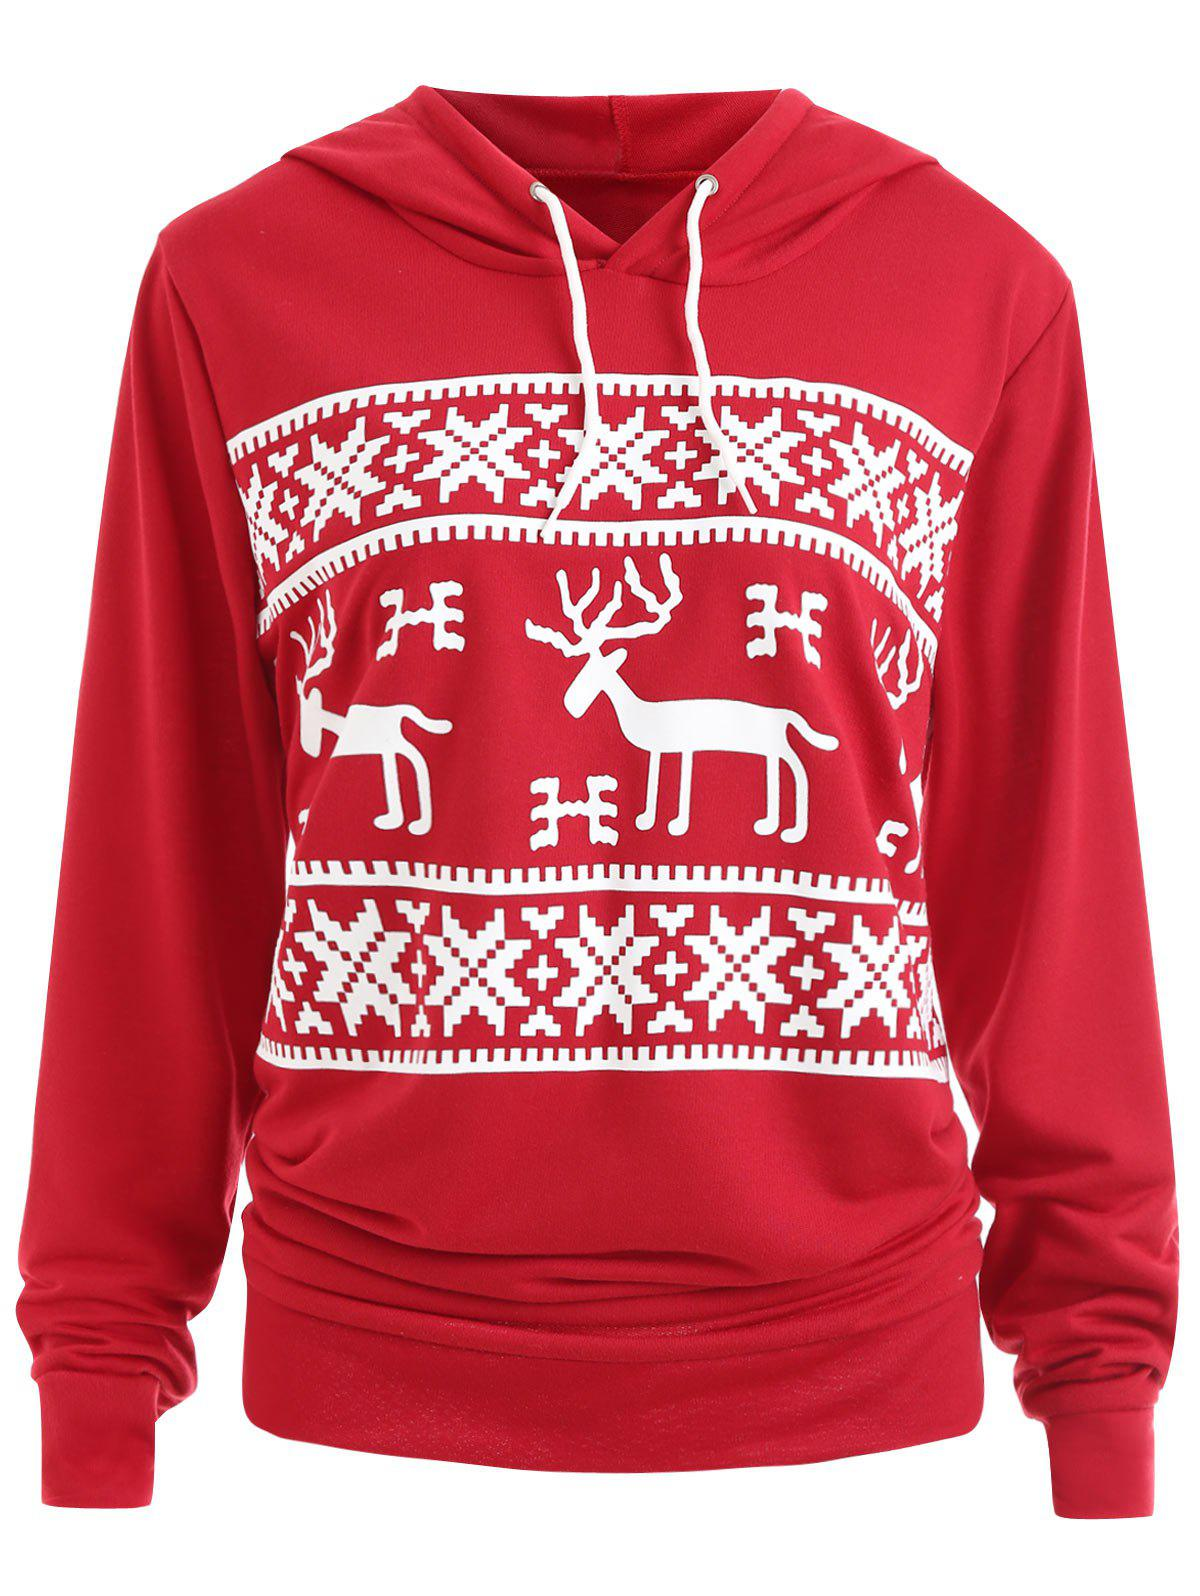 Plus Size Christmas ELK Hoodie with Pocket plus size plain drop shoulder hoodie with pocket